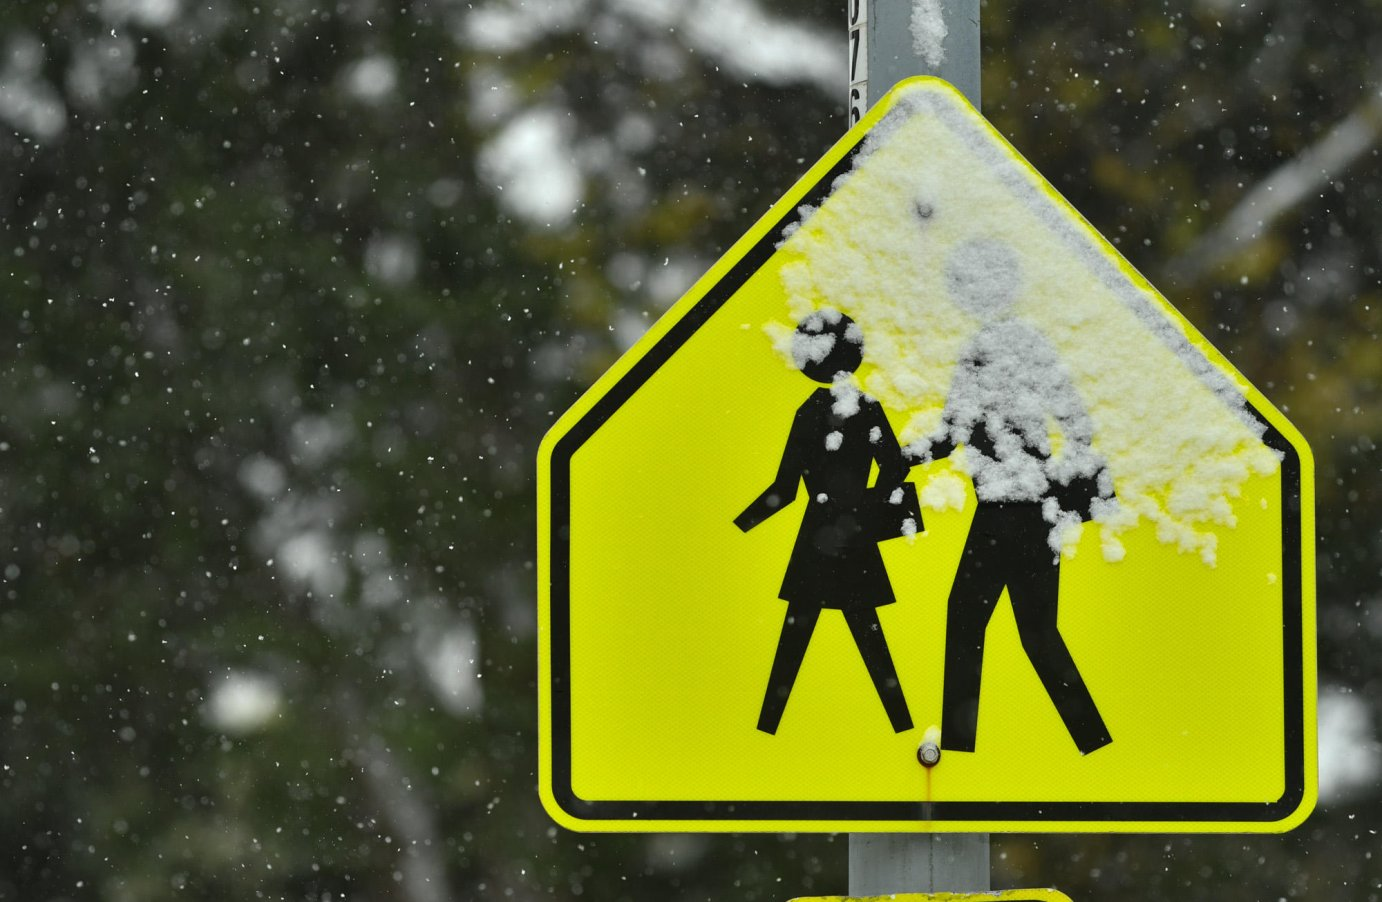 Snow falls on a school crossing sign in Kansas City on October 26, 2020. (Photo by Carlos Moreno)